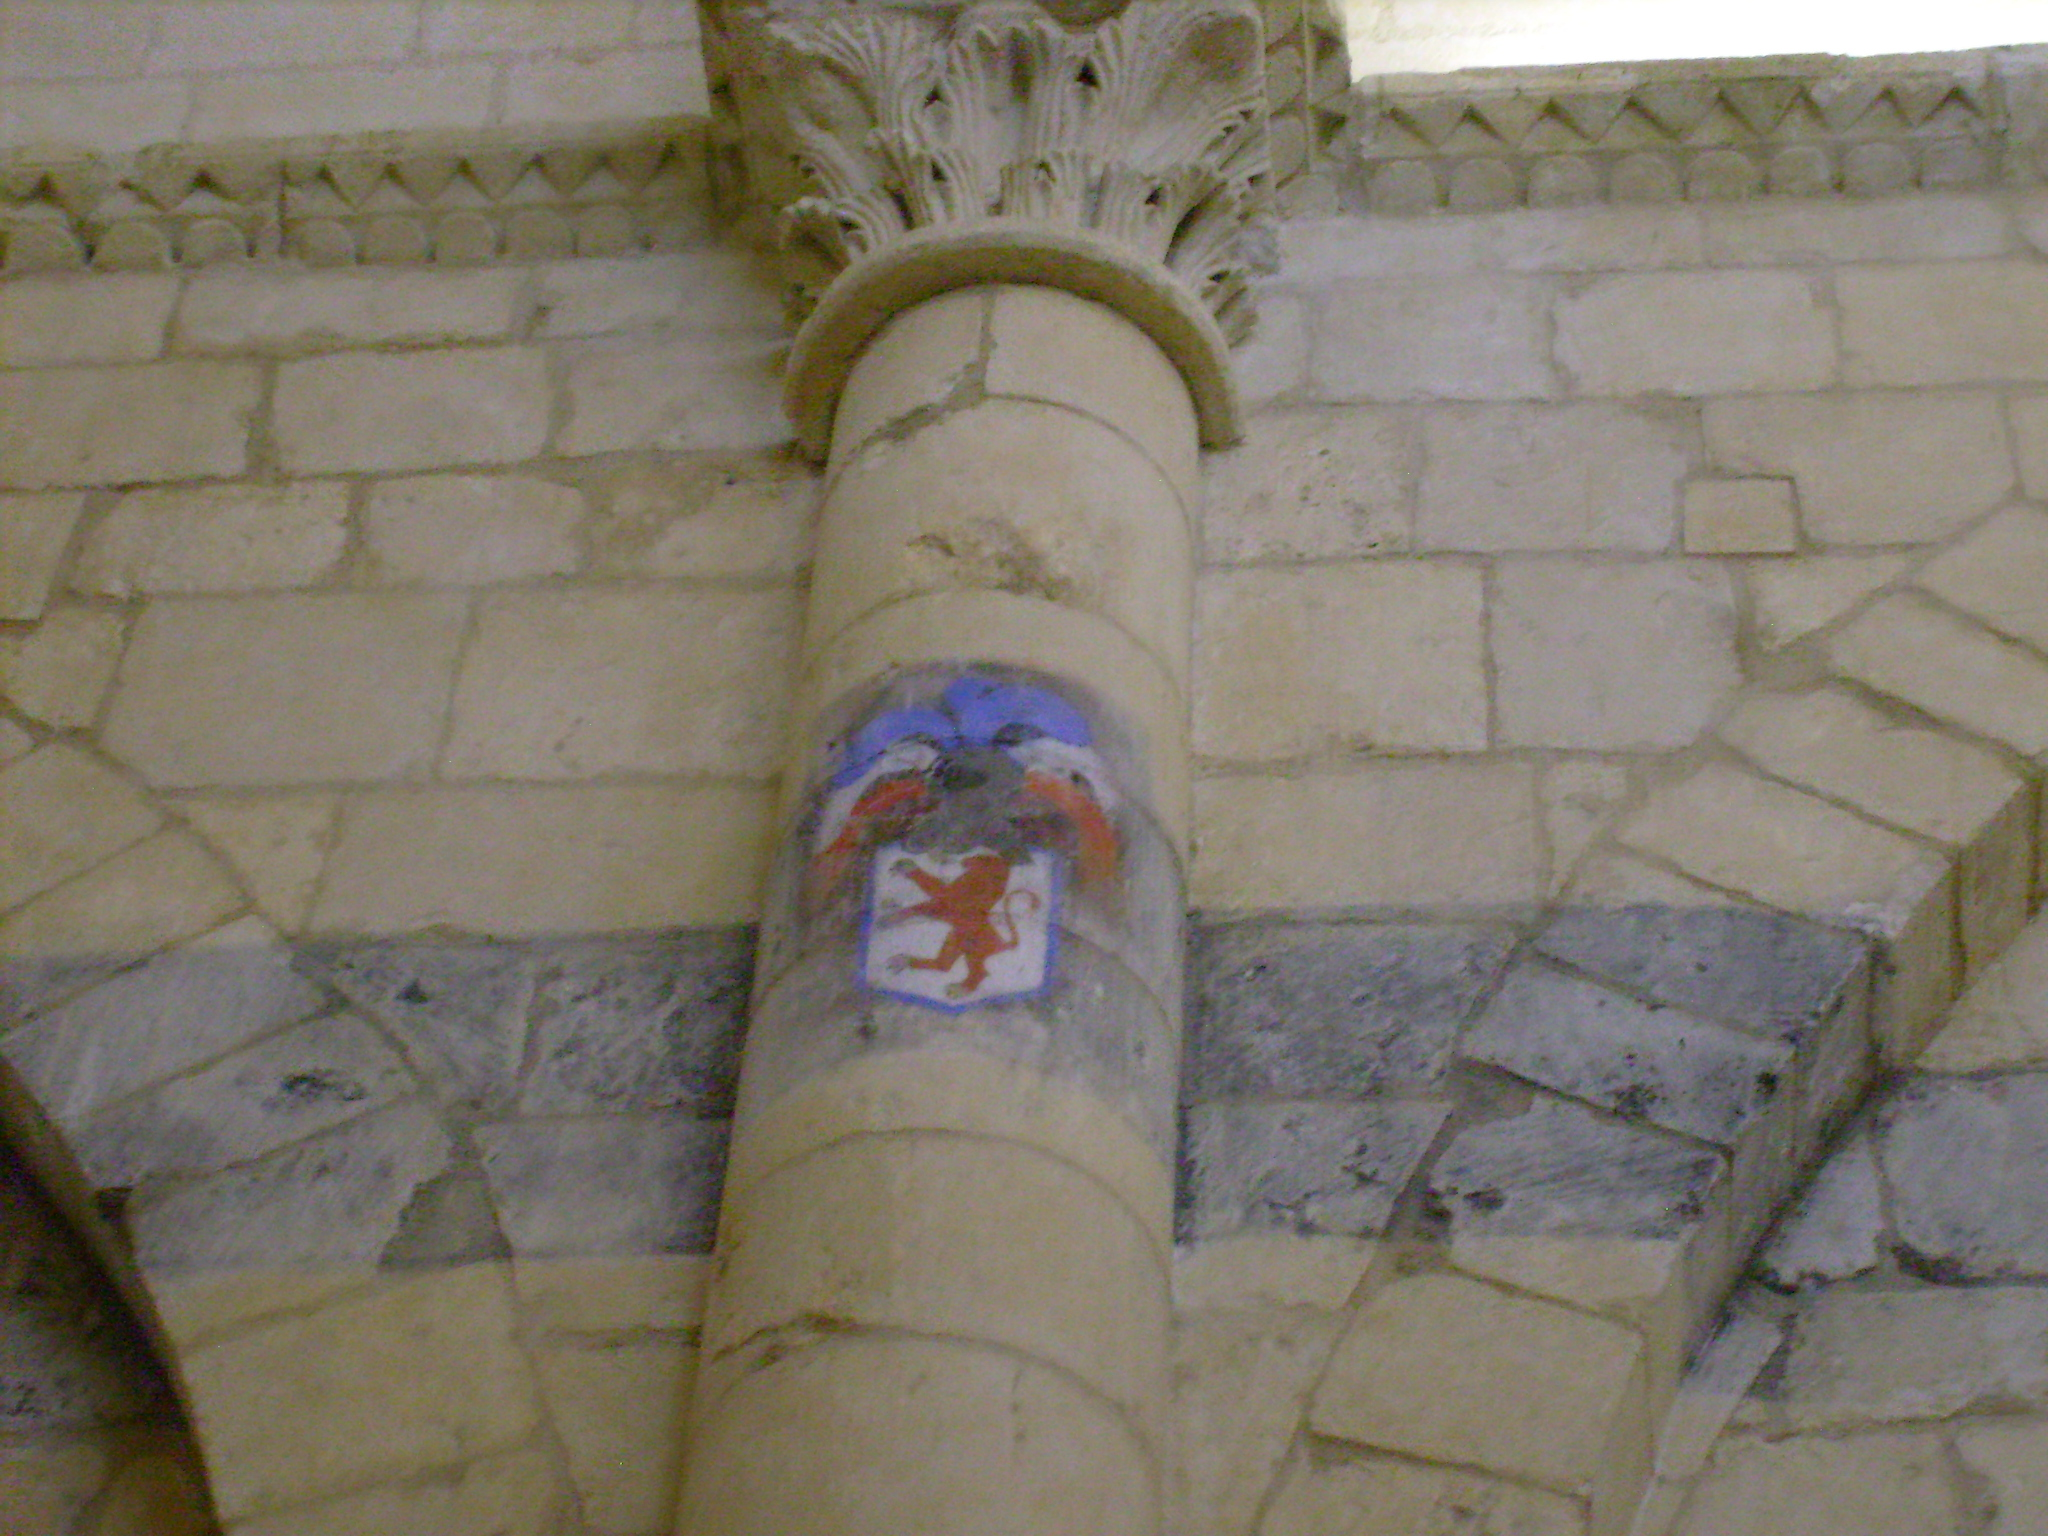 Litre in der Kirche von Rioux (Charente-Maritime), Foto von Cobber17, Lizenz: Creative Commons Attribution 3.0/CC by